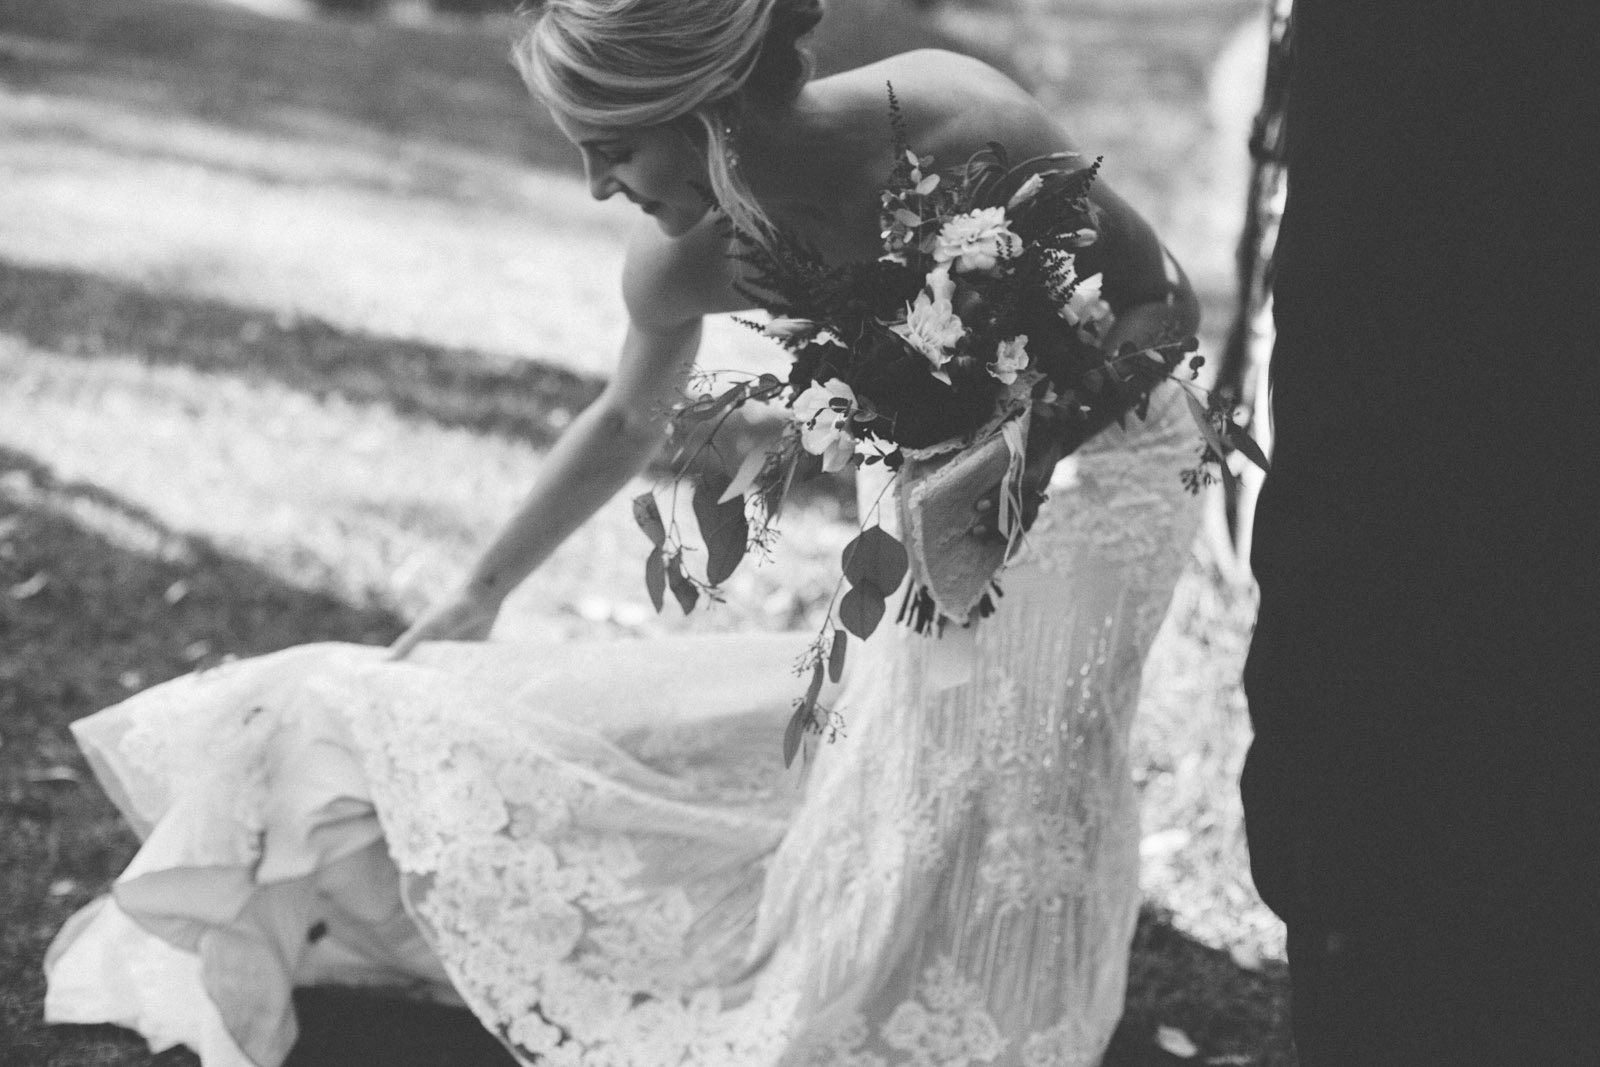 060-bride-picking-up-her-dress-in-aisle-at-grooms-feet